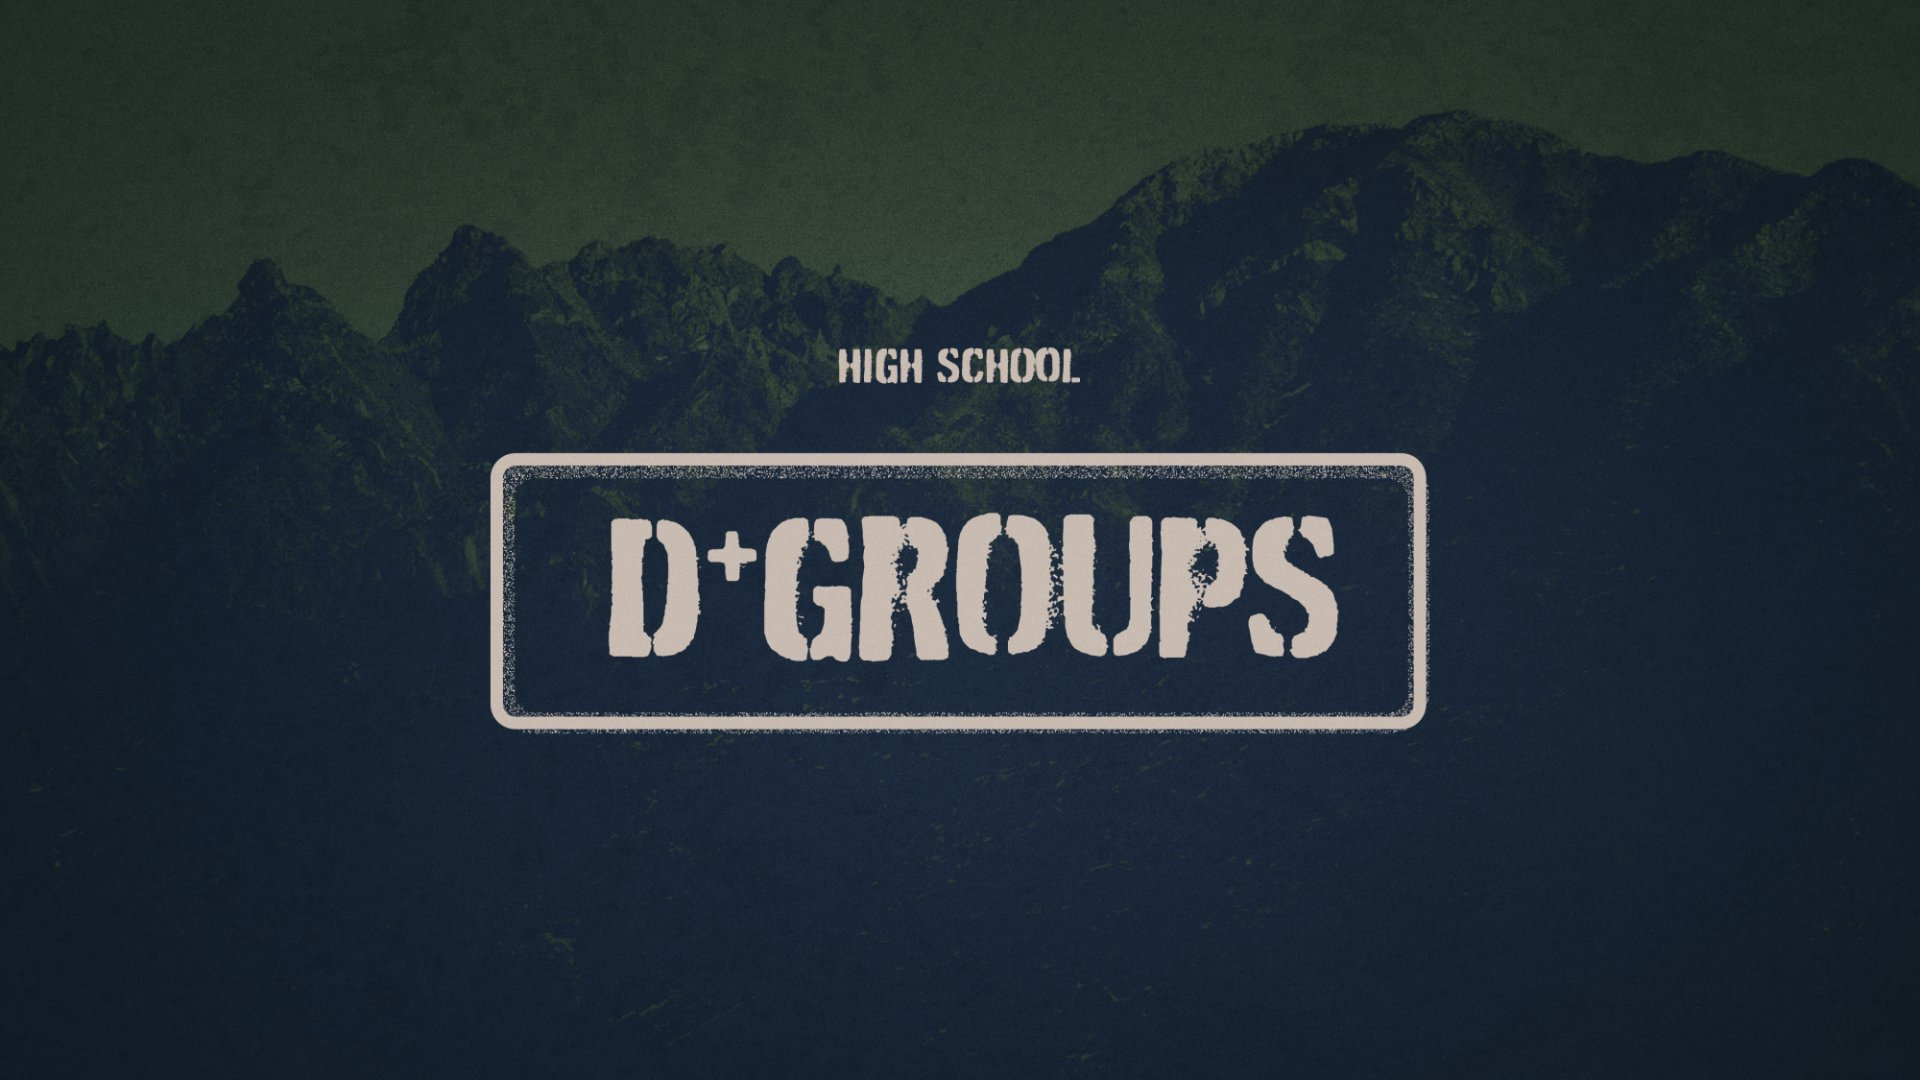 Poster for D-Groups